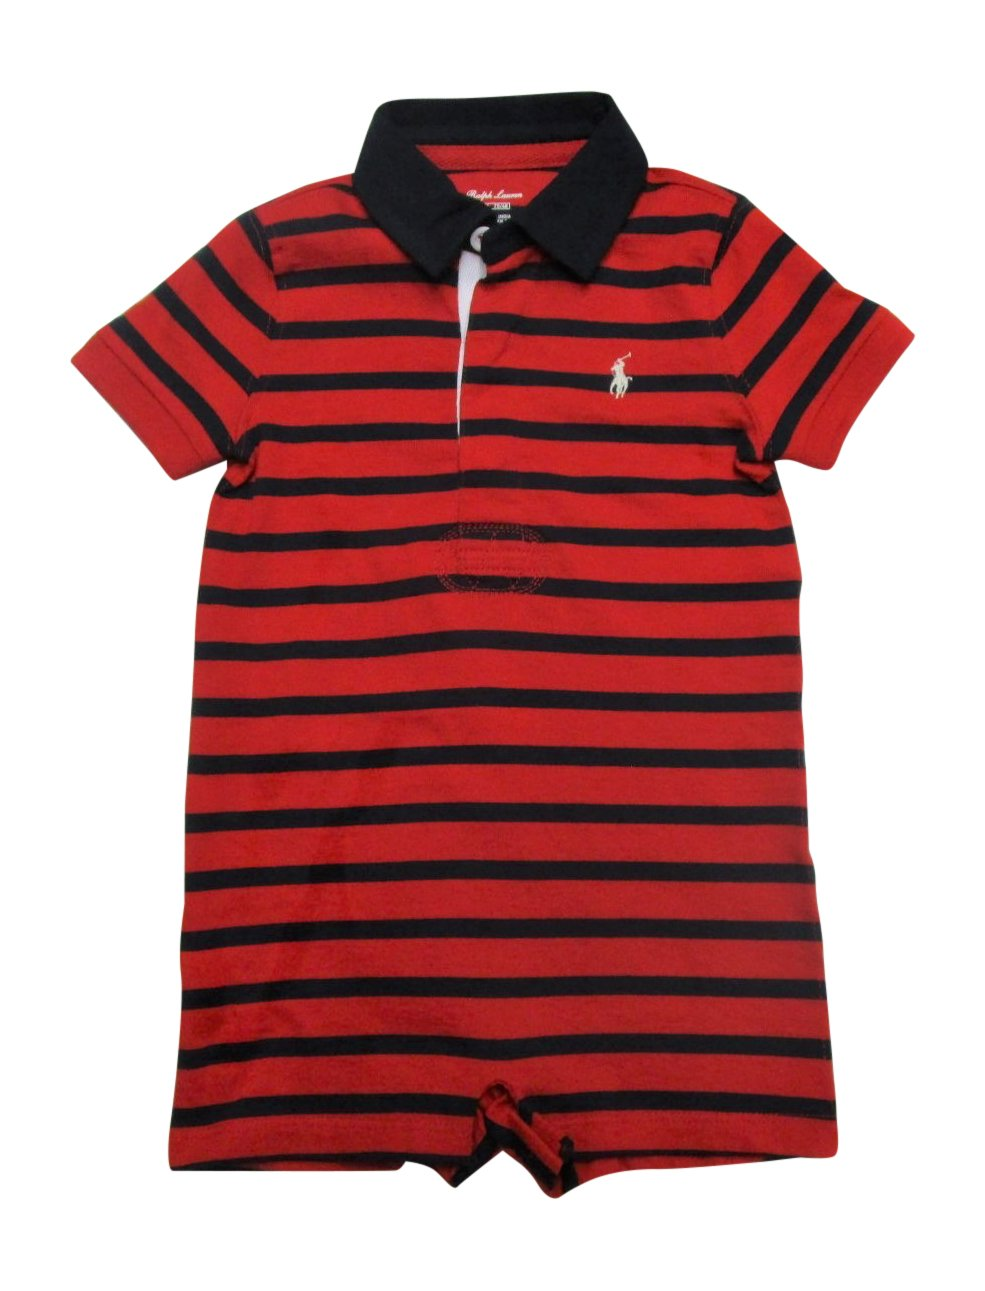 90267c6bb548 Galleon - RALPH LAUREN Baby Boys Striped Cotton Rugby Shortall (Red Hunter  Navy